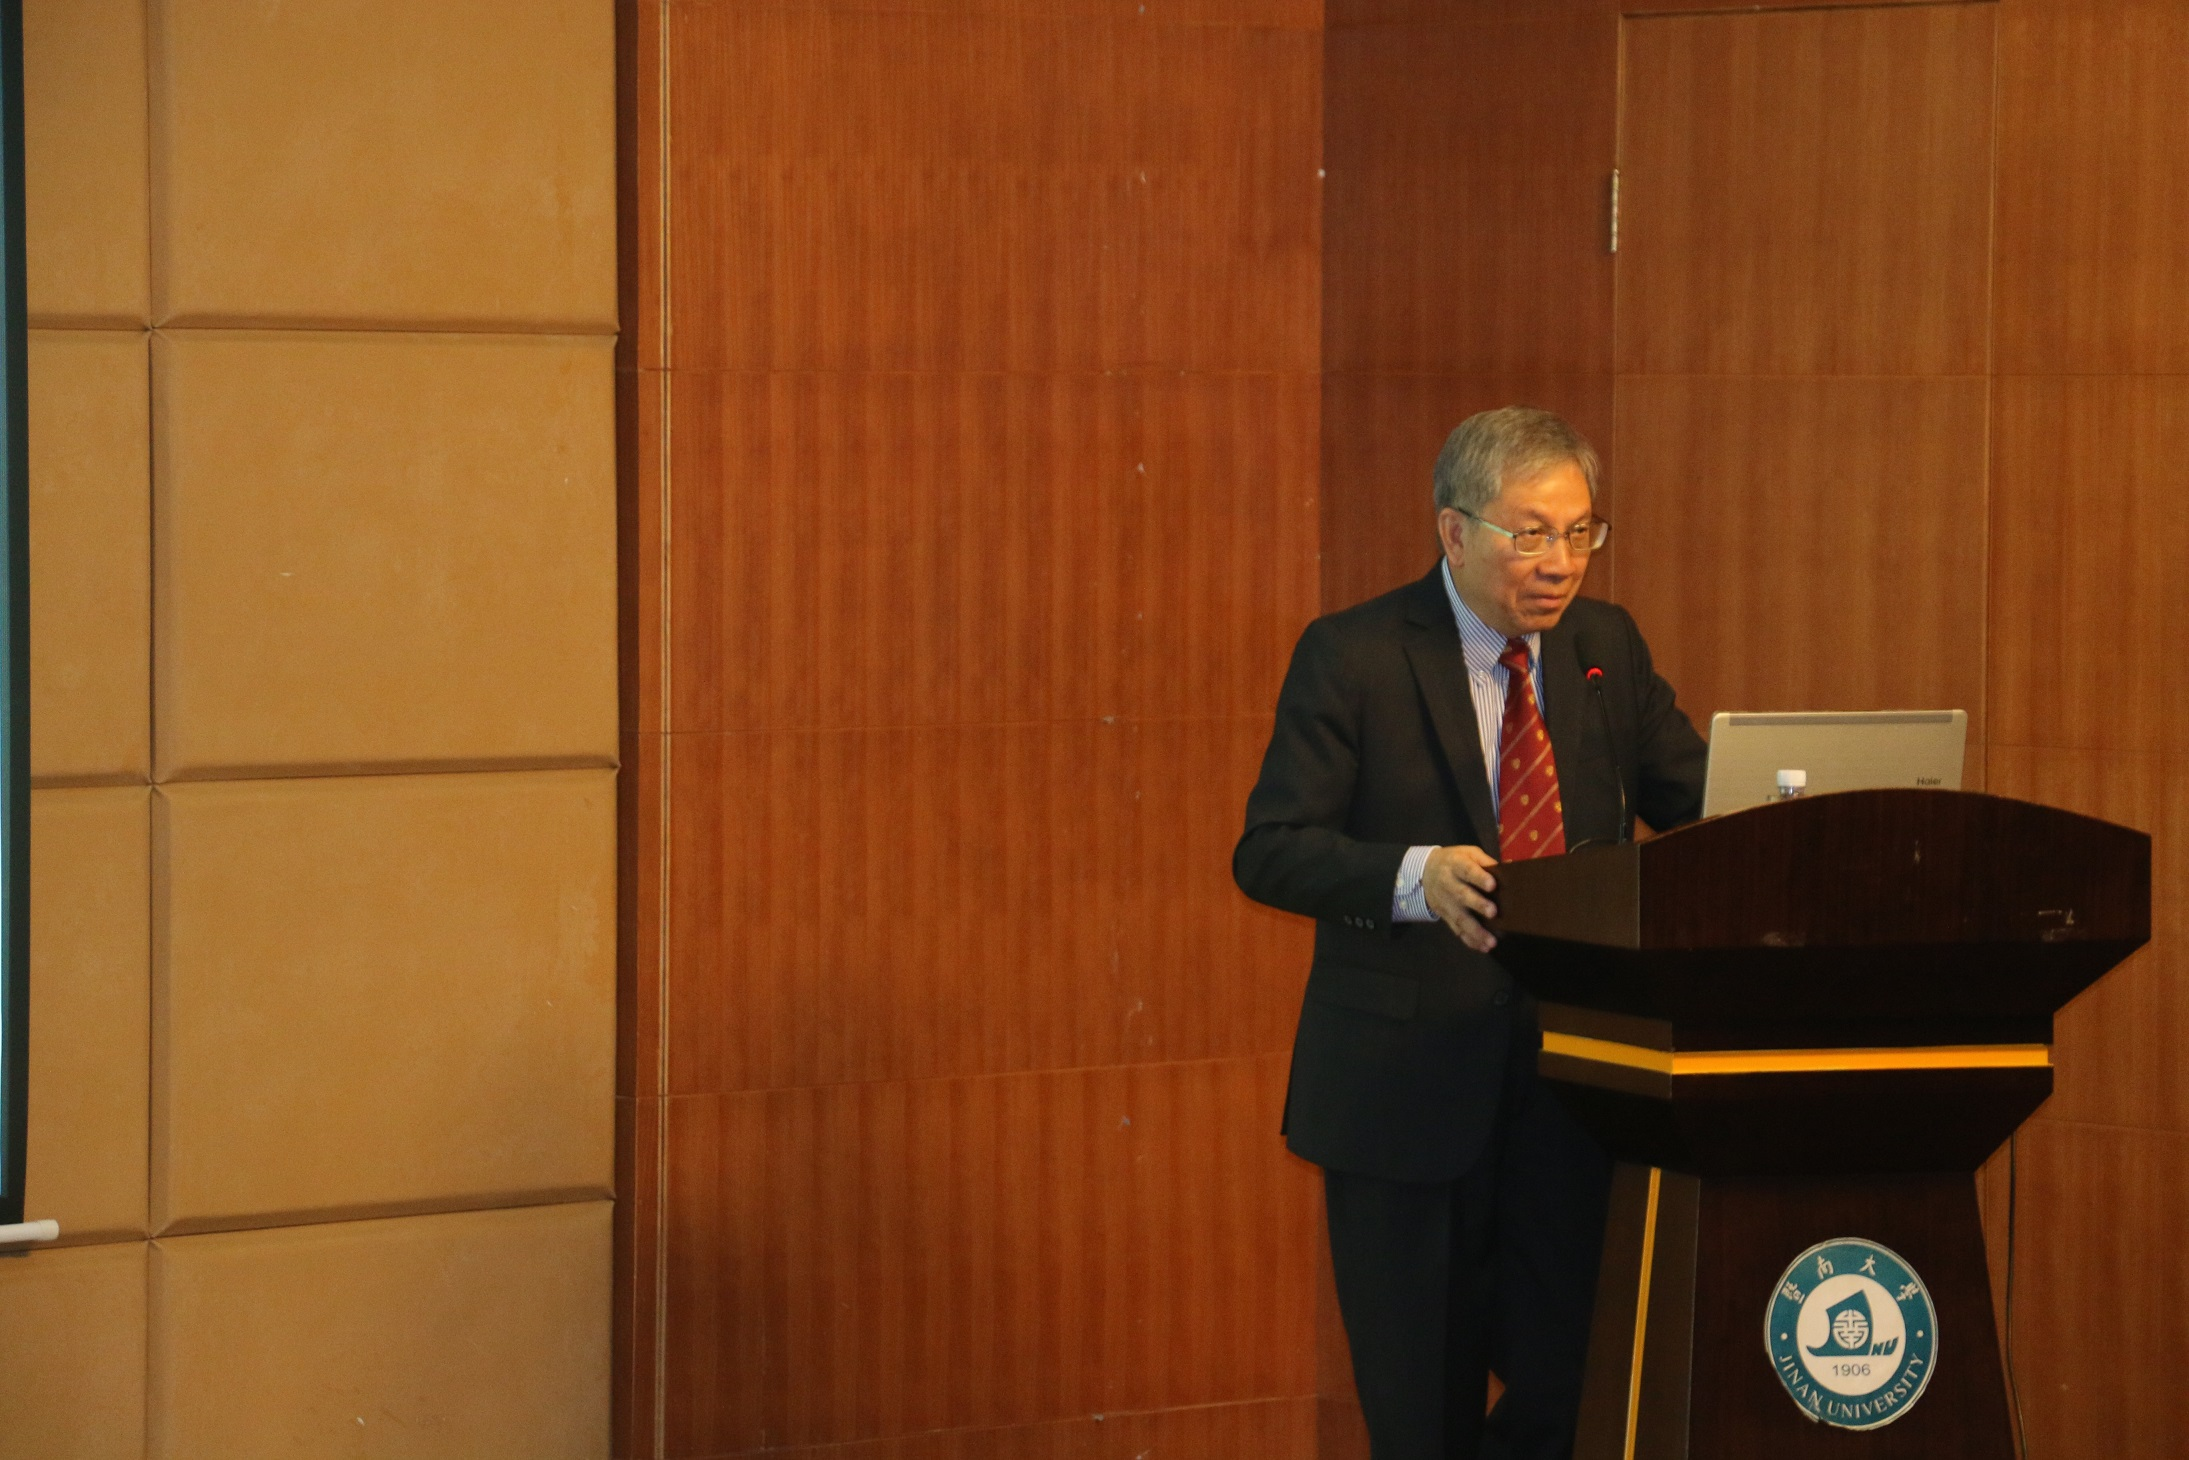 Prof. Chan Wai-yee gives an opening remarks during the Symposium